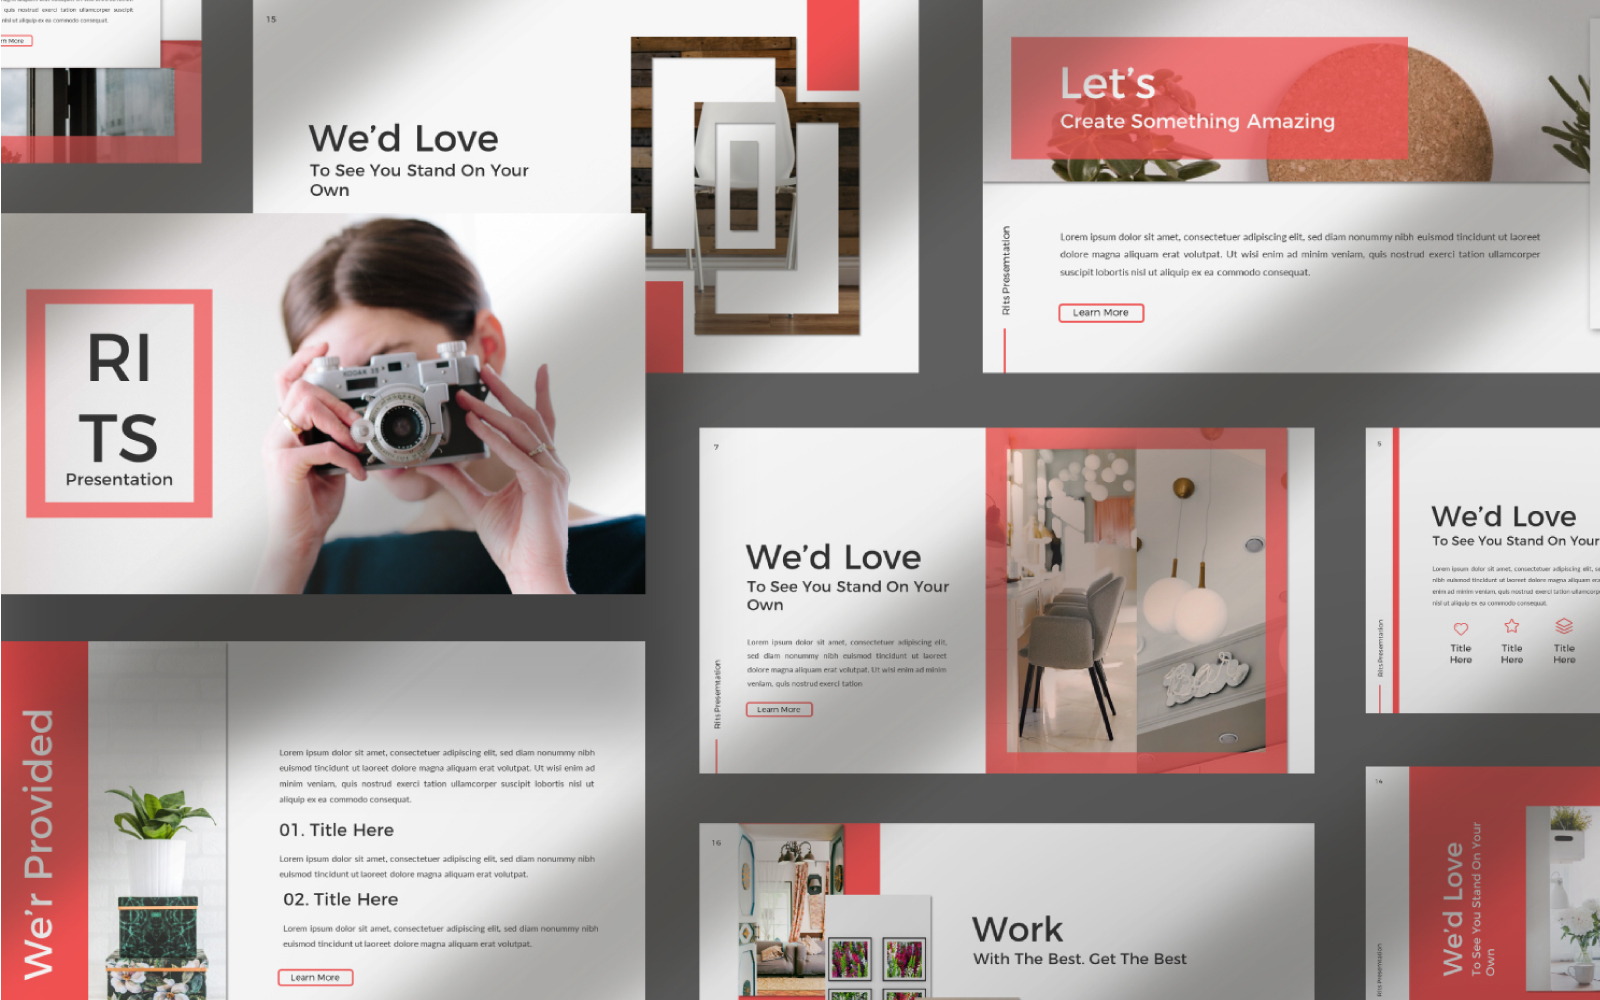 rits Presentation PowerPoint Template